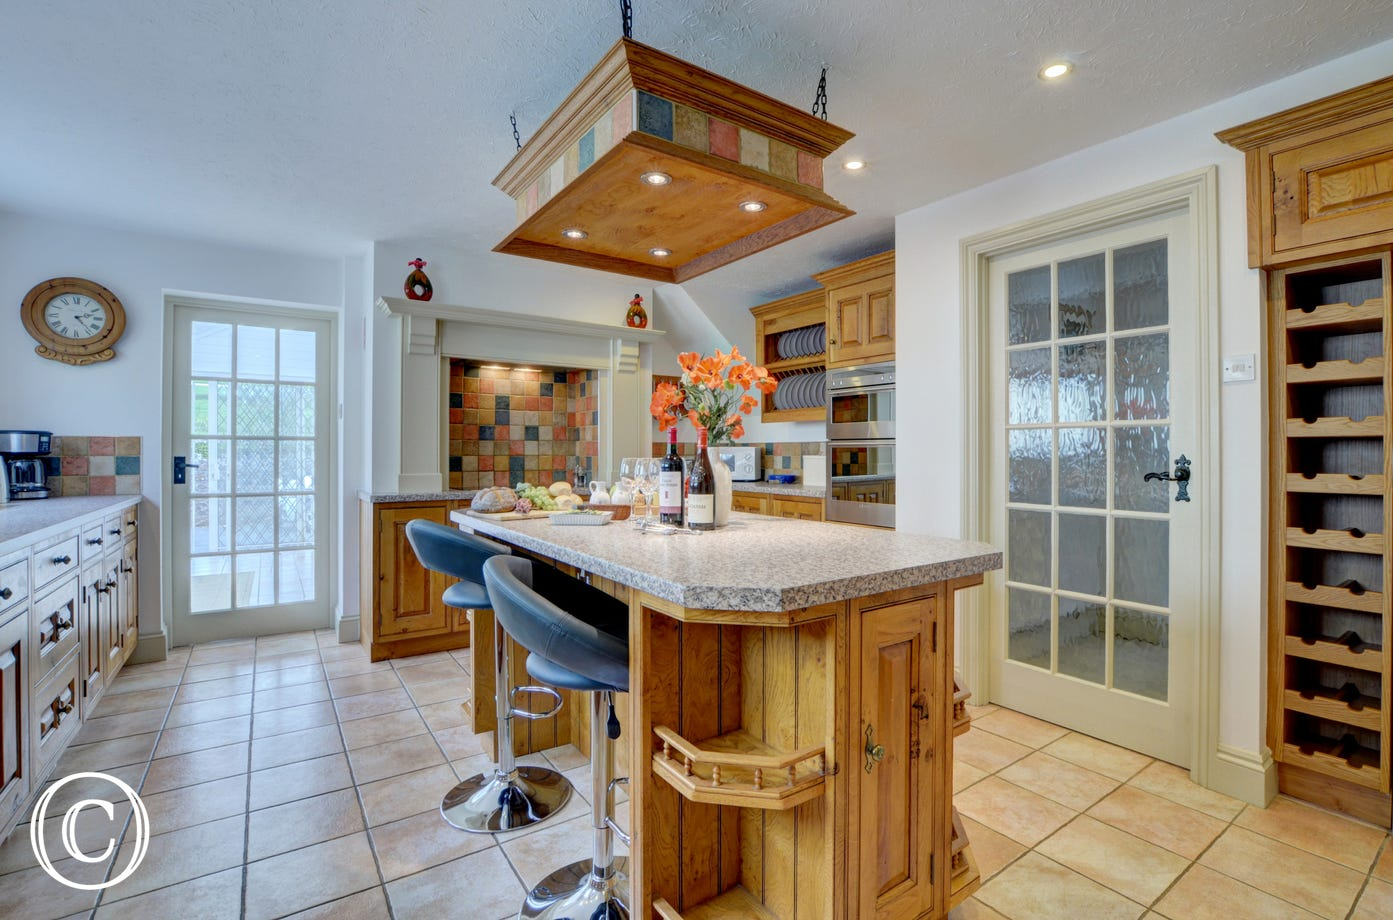 The kitchen has a useful island with bar stools